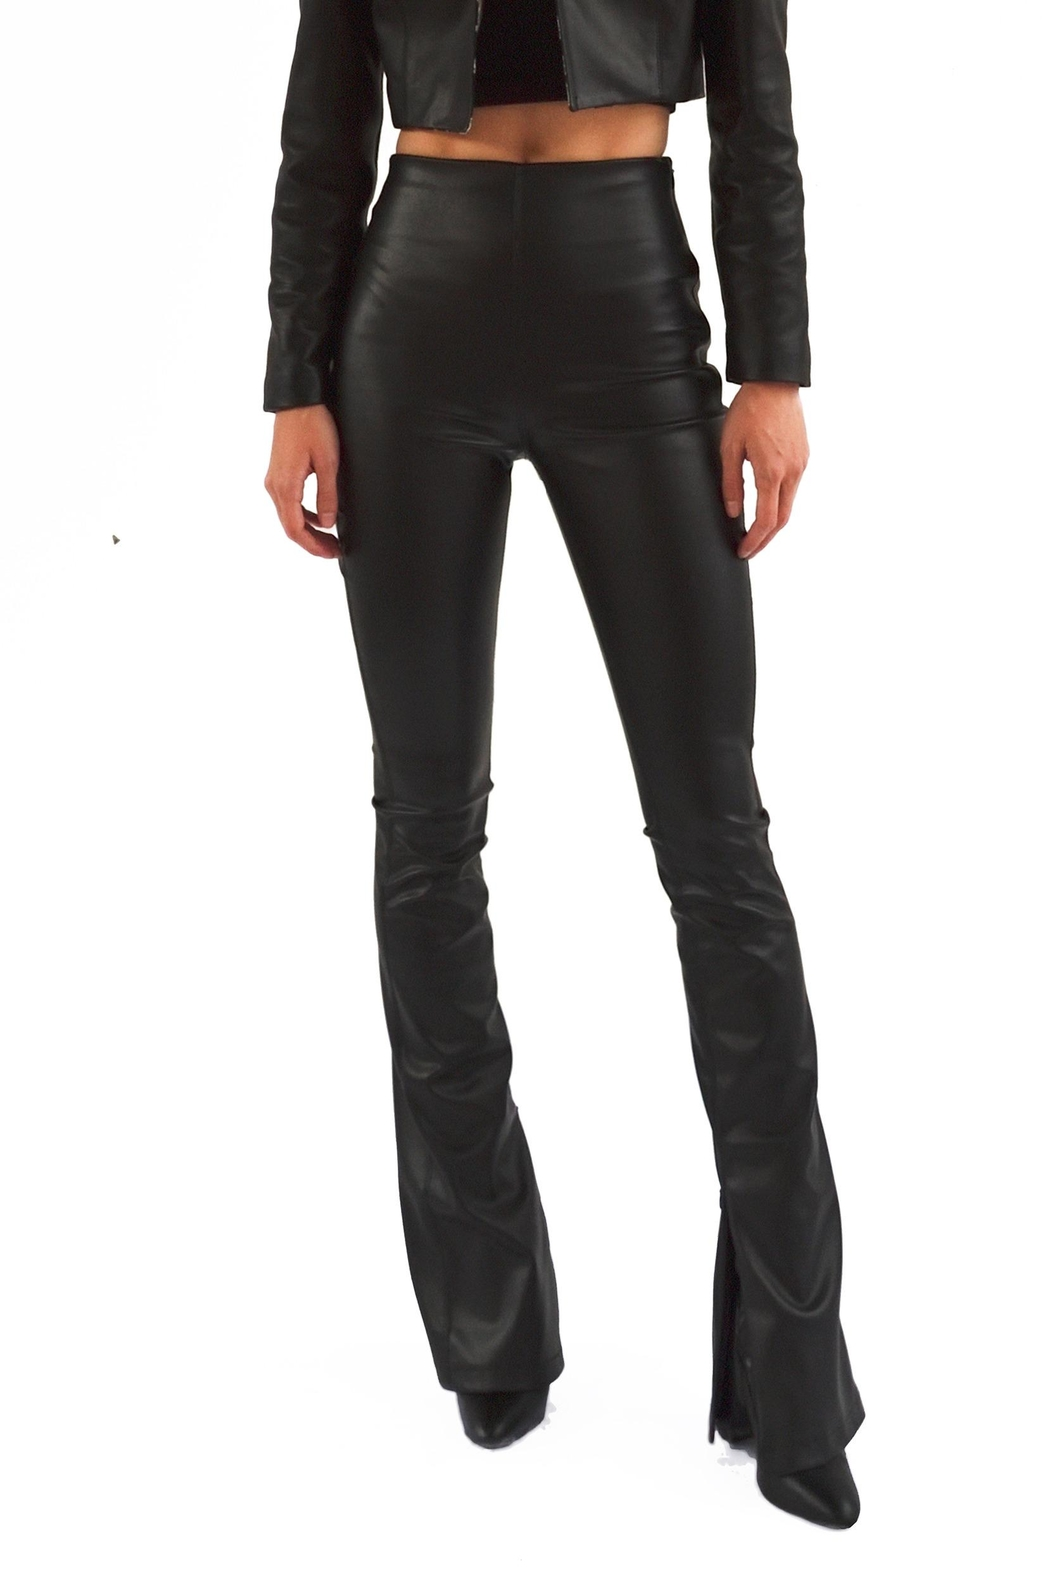 Viesca y Viesca Vegan Leather Pants - Main Image